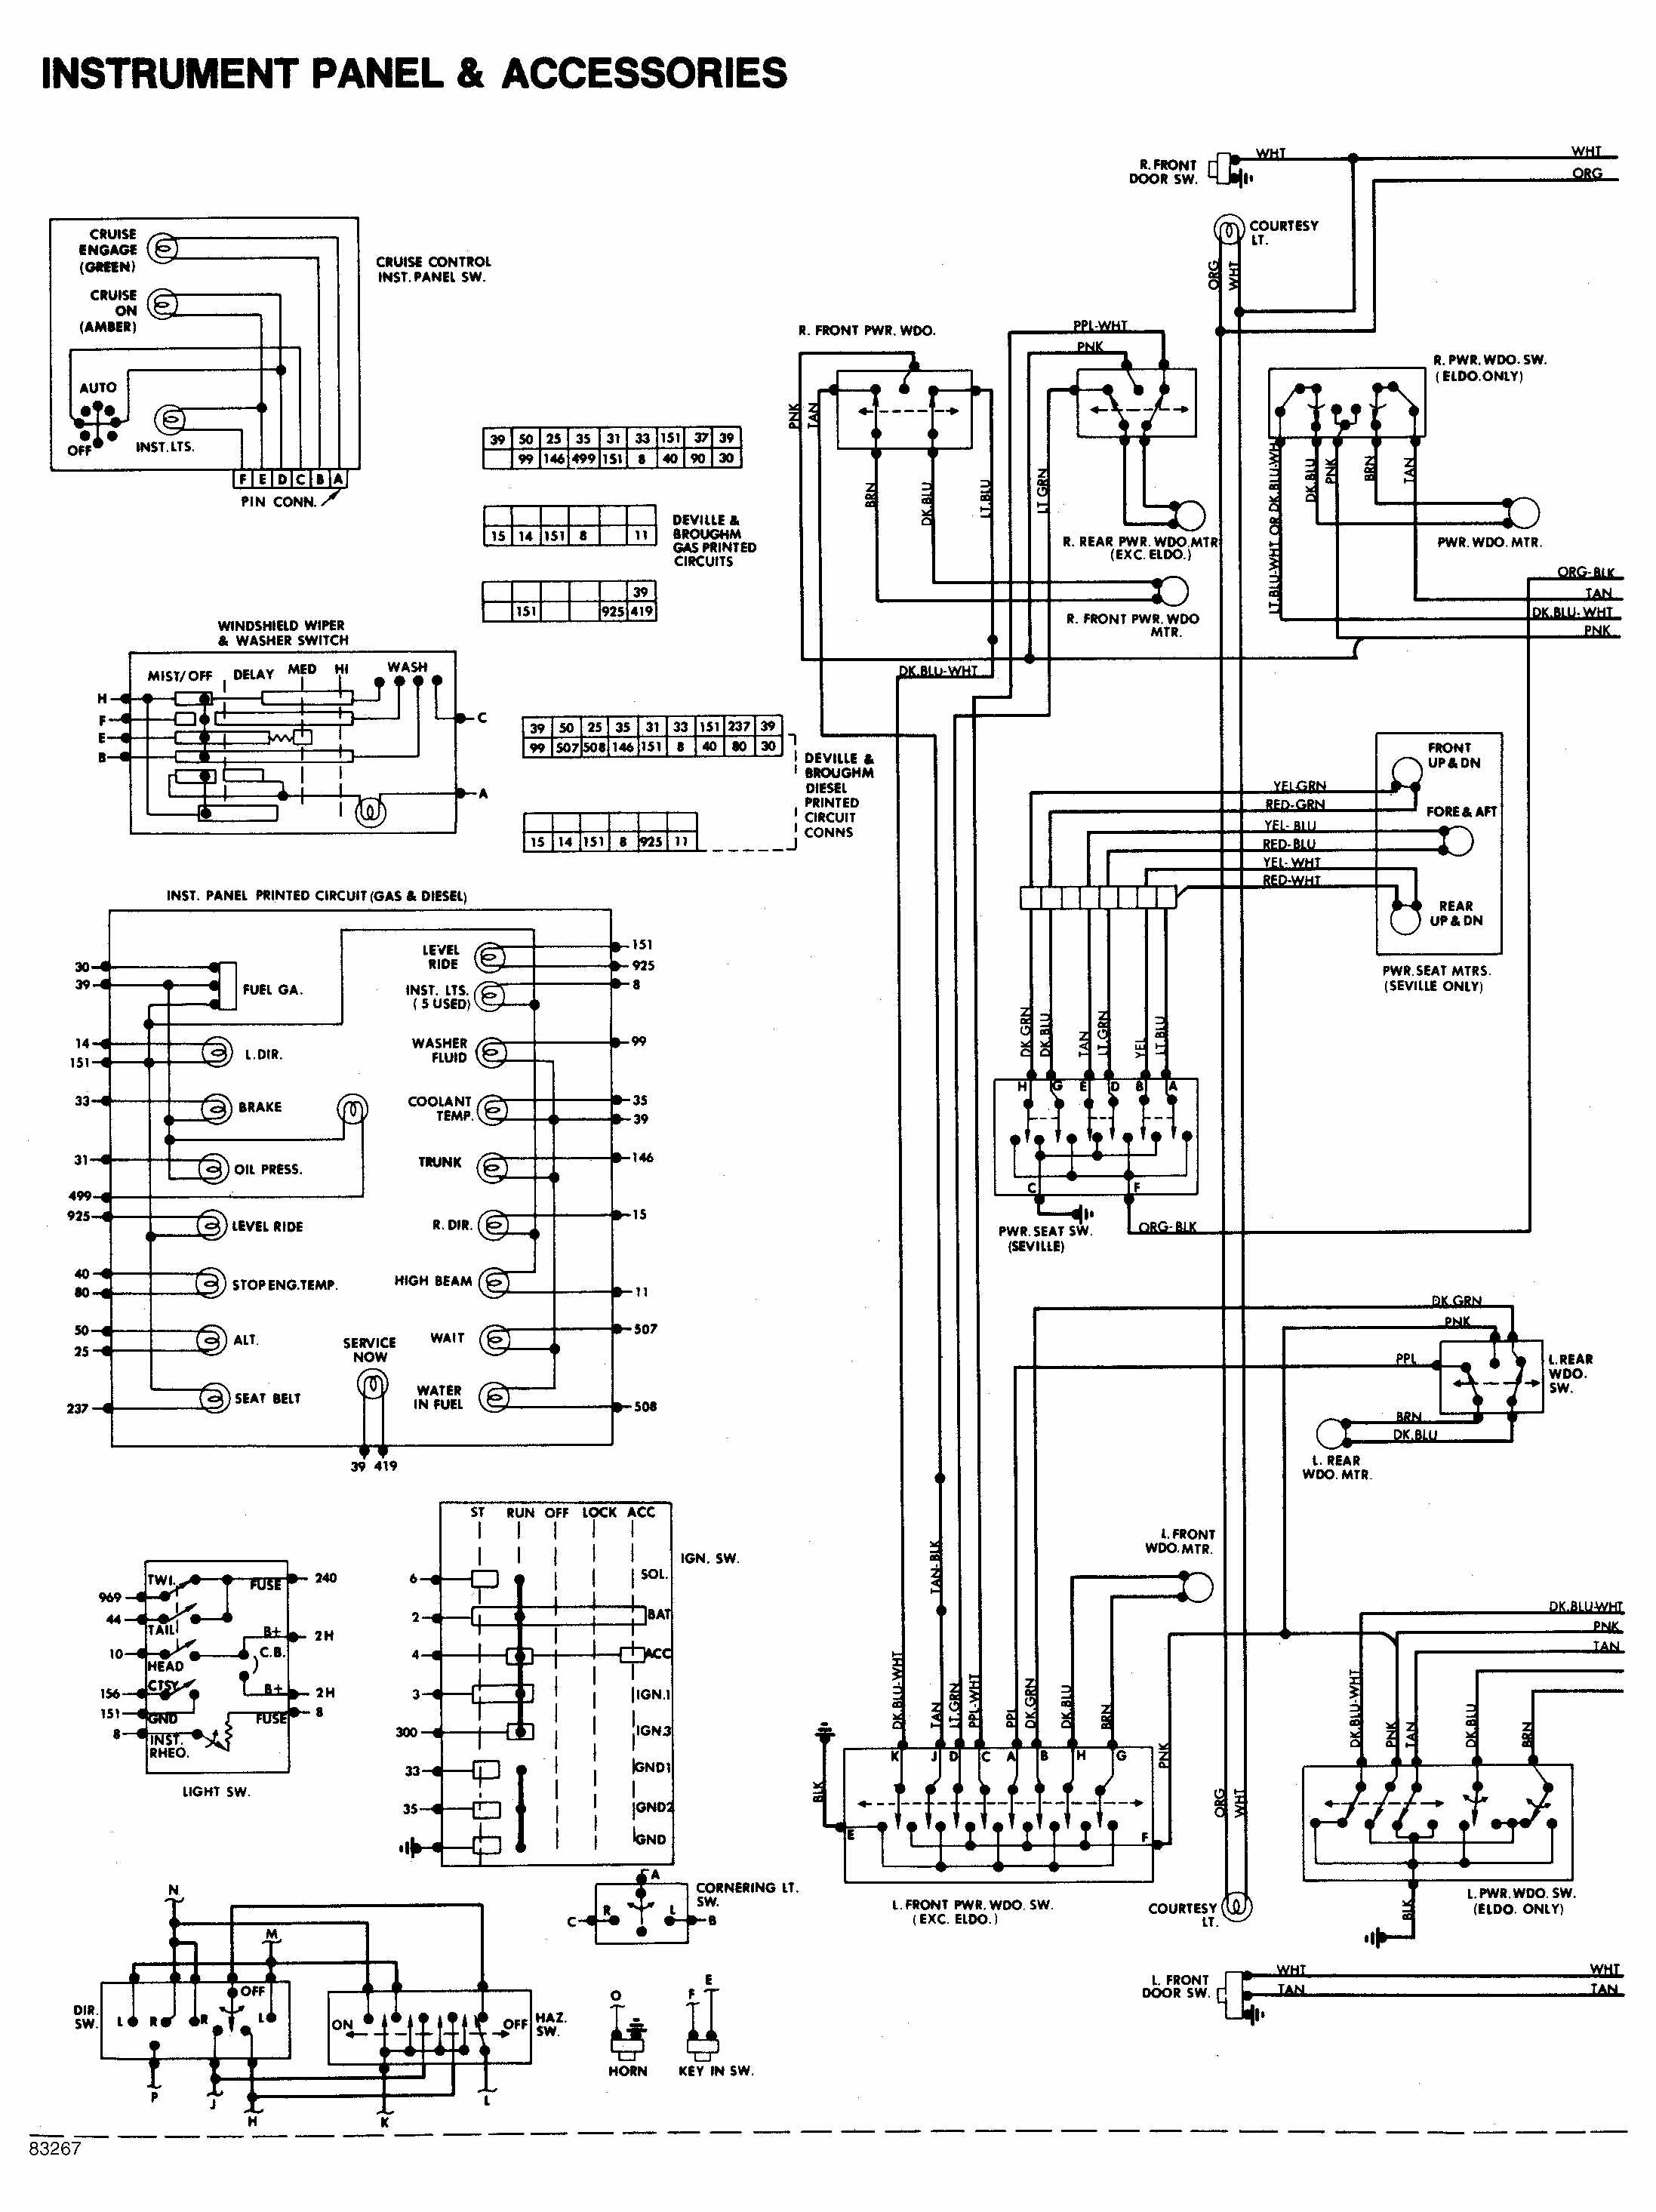 instrument panel and accessories wiring diagram of 1984 cadillac deville 2000 corvette wiring diagram on 2000 download wirning diagrams 2000 C5 Corvette Wiring Diagram at eliteediting.co